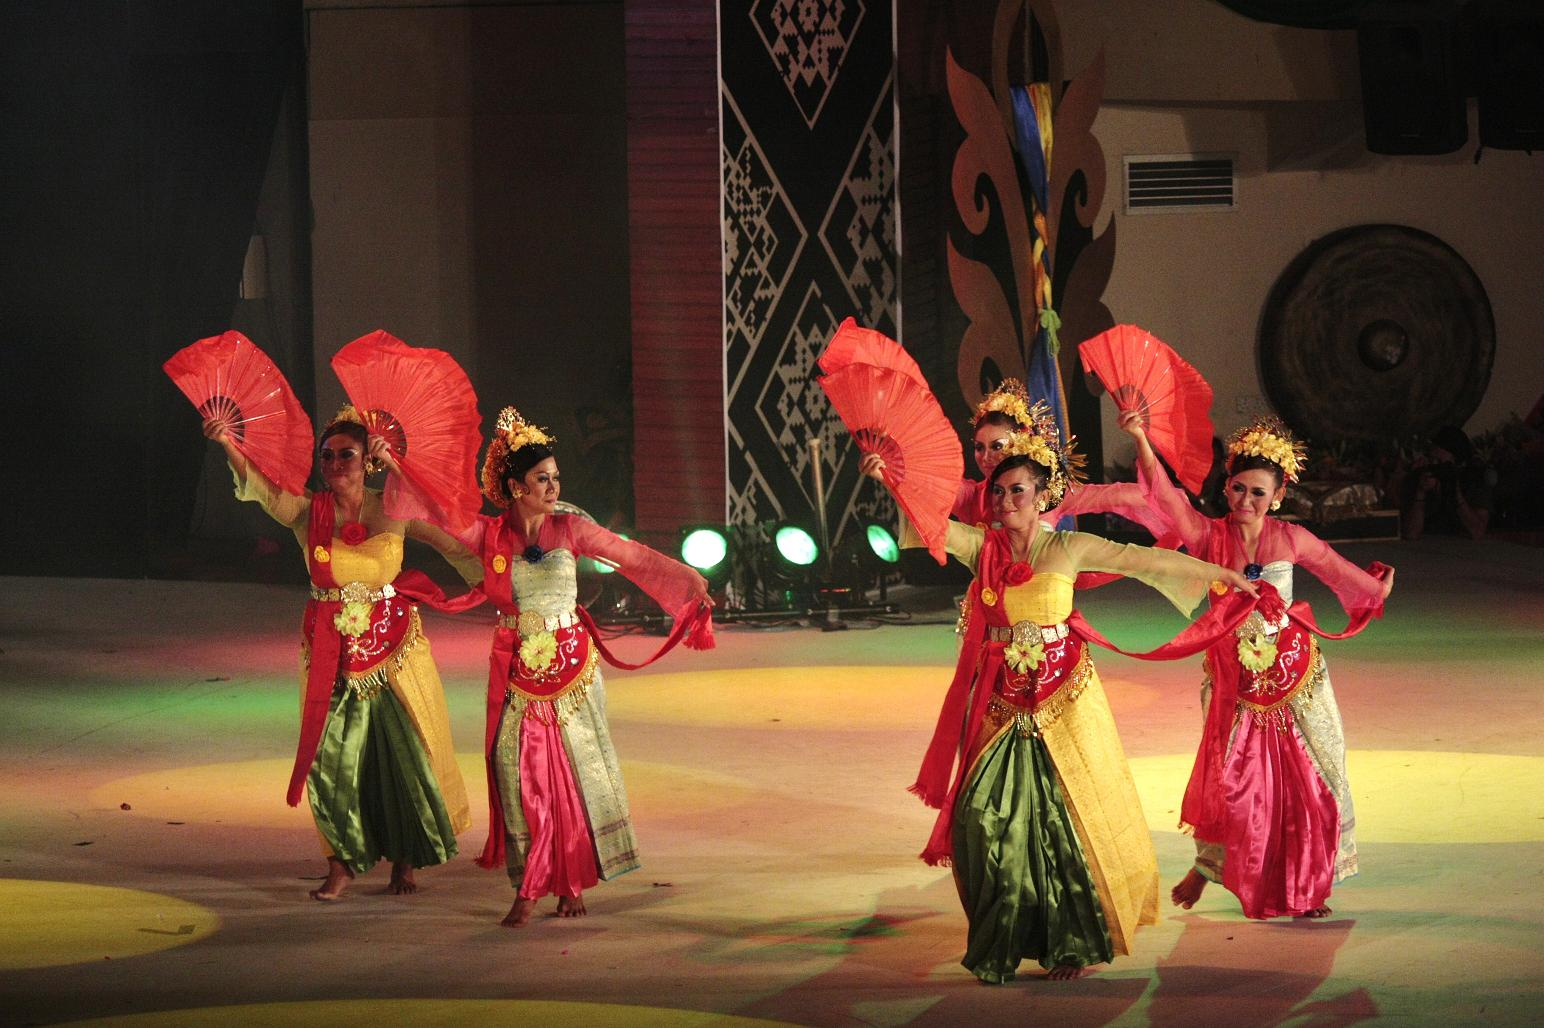 Jaipong is a traditional dance used by the community to mingle